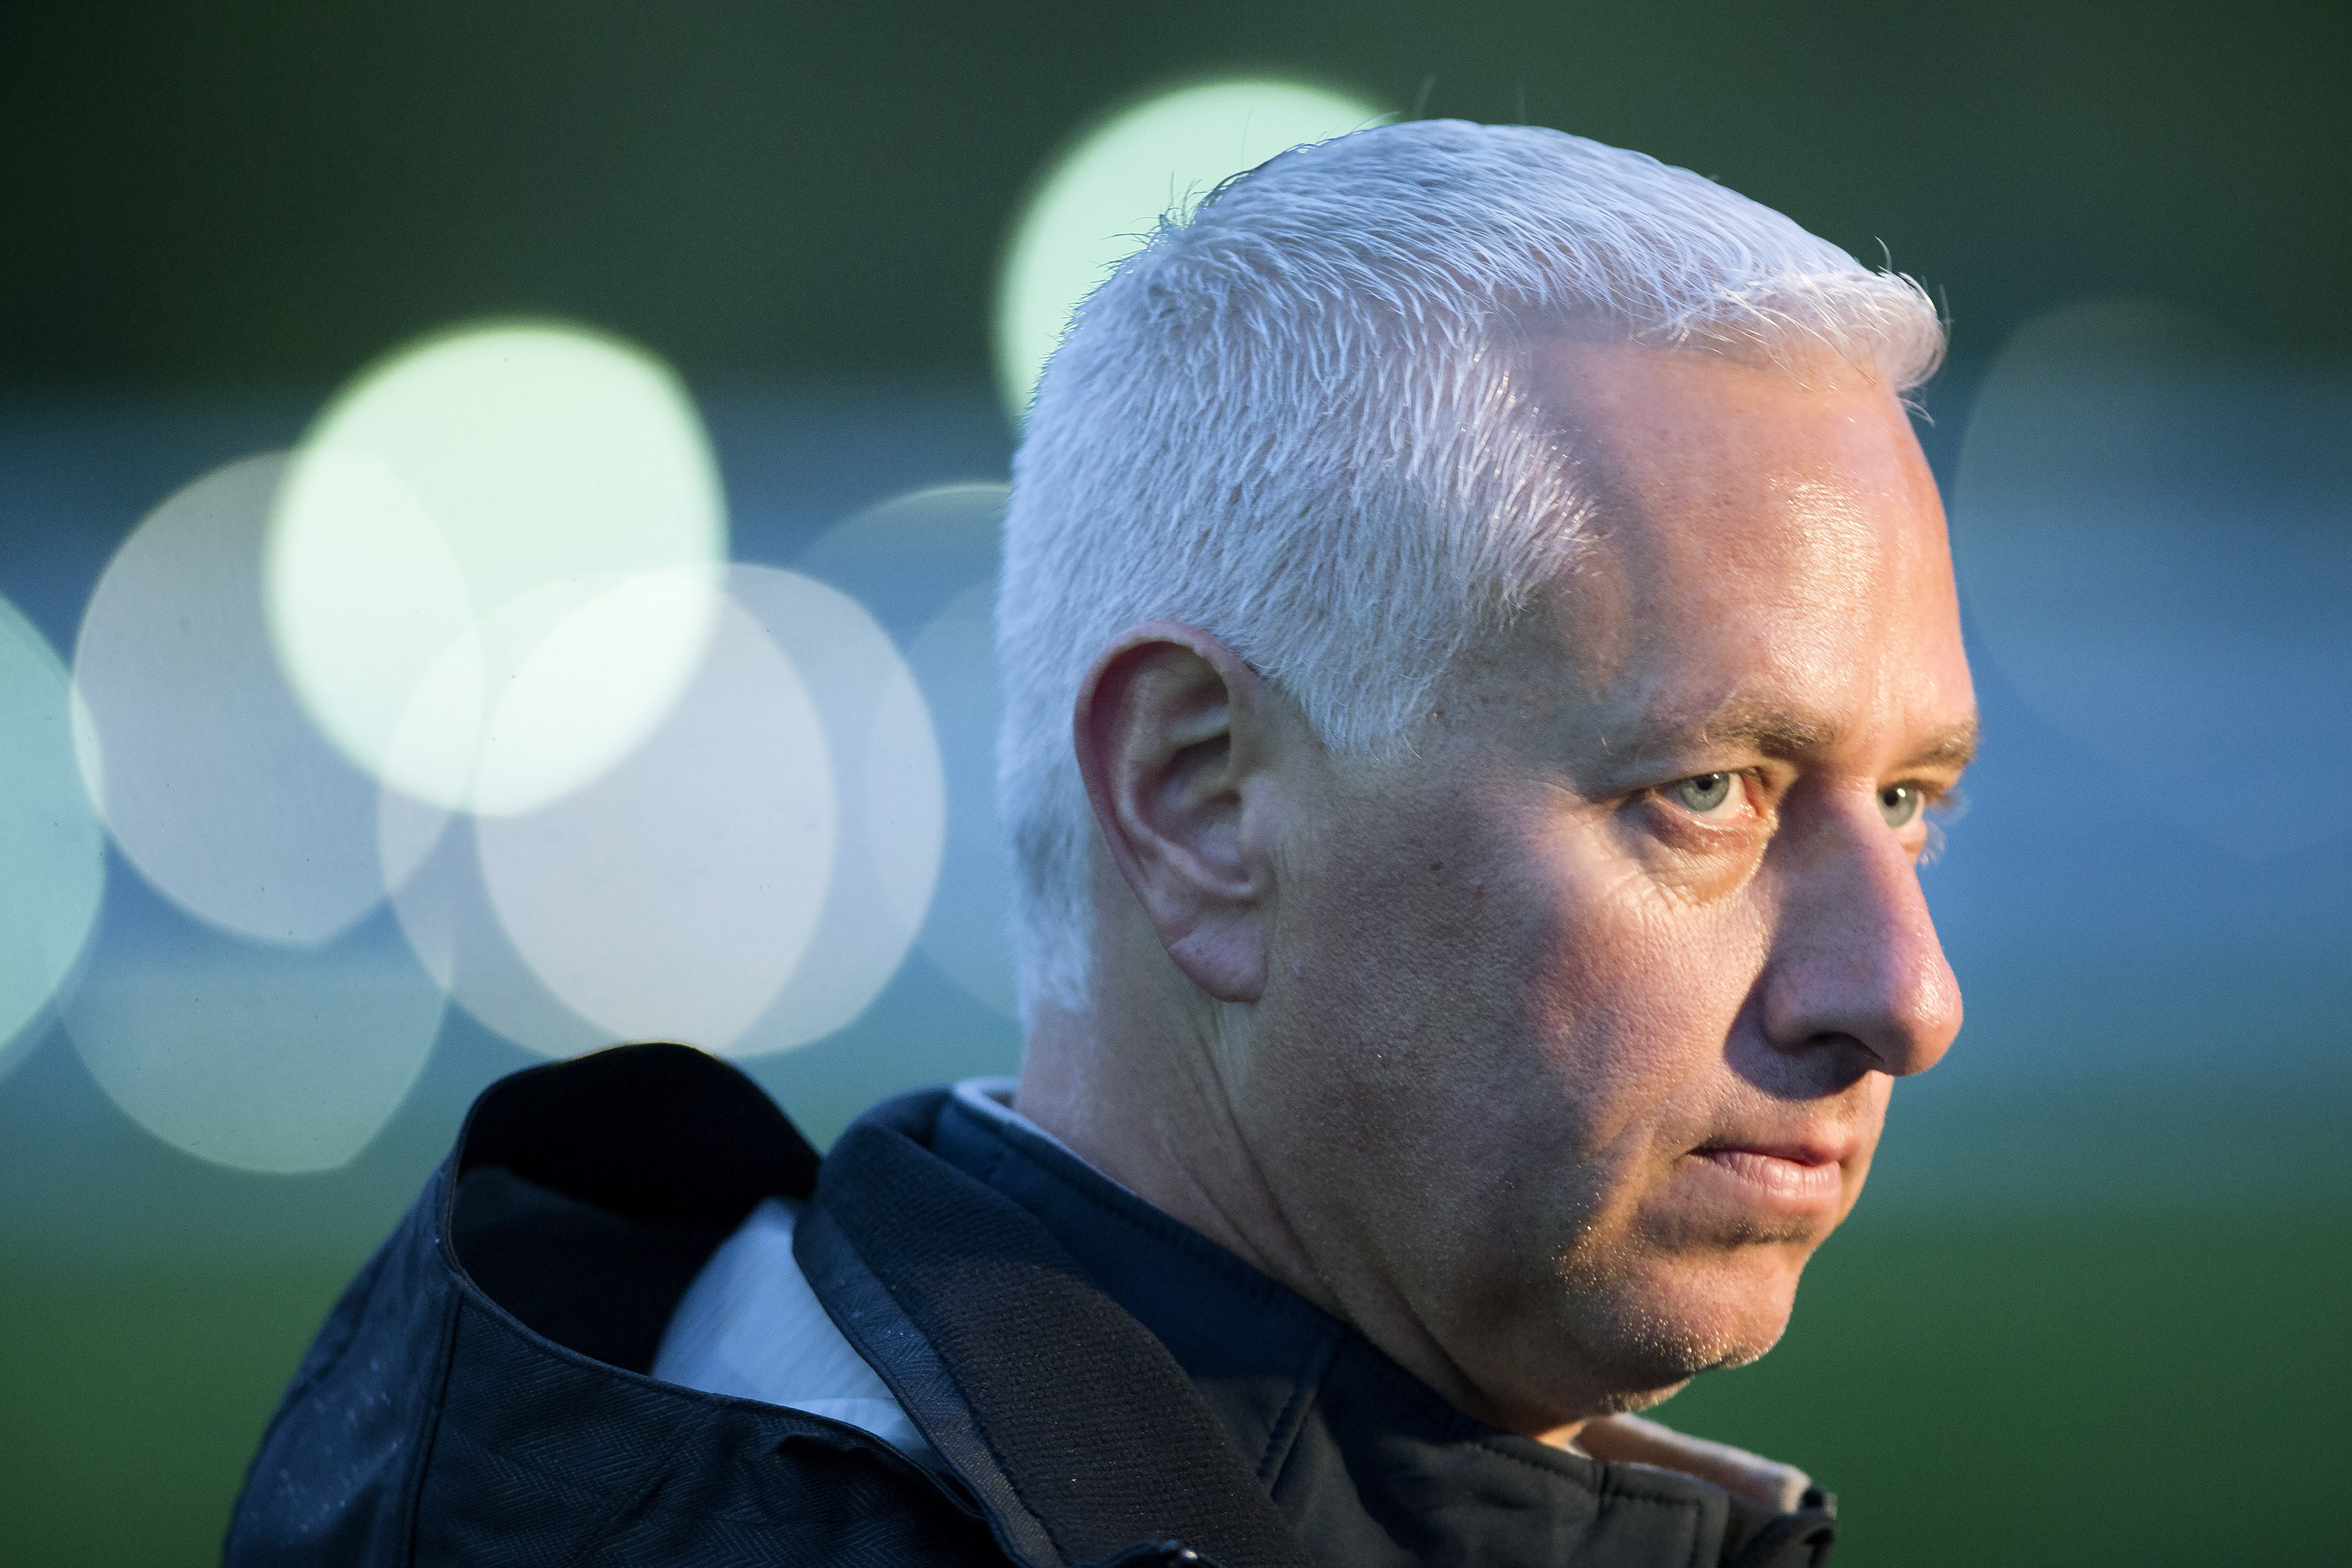 Trainer Todd Pletcher speaks to media after his Kentucky Derby contender Carpe Diem worked out at Keeneland in Lexington, Ky., Saturday, April 25, 2015. The 141st Kentucky Derby will be run on Saturday, May 2, 2015 at Churchill Downs. (AP Photo/David Step